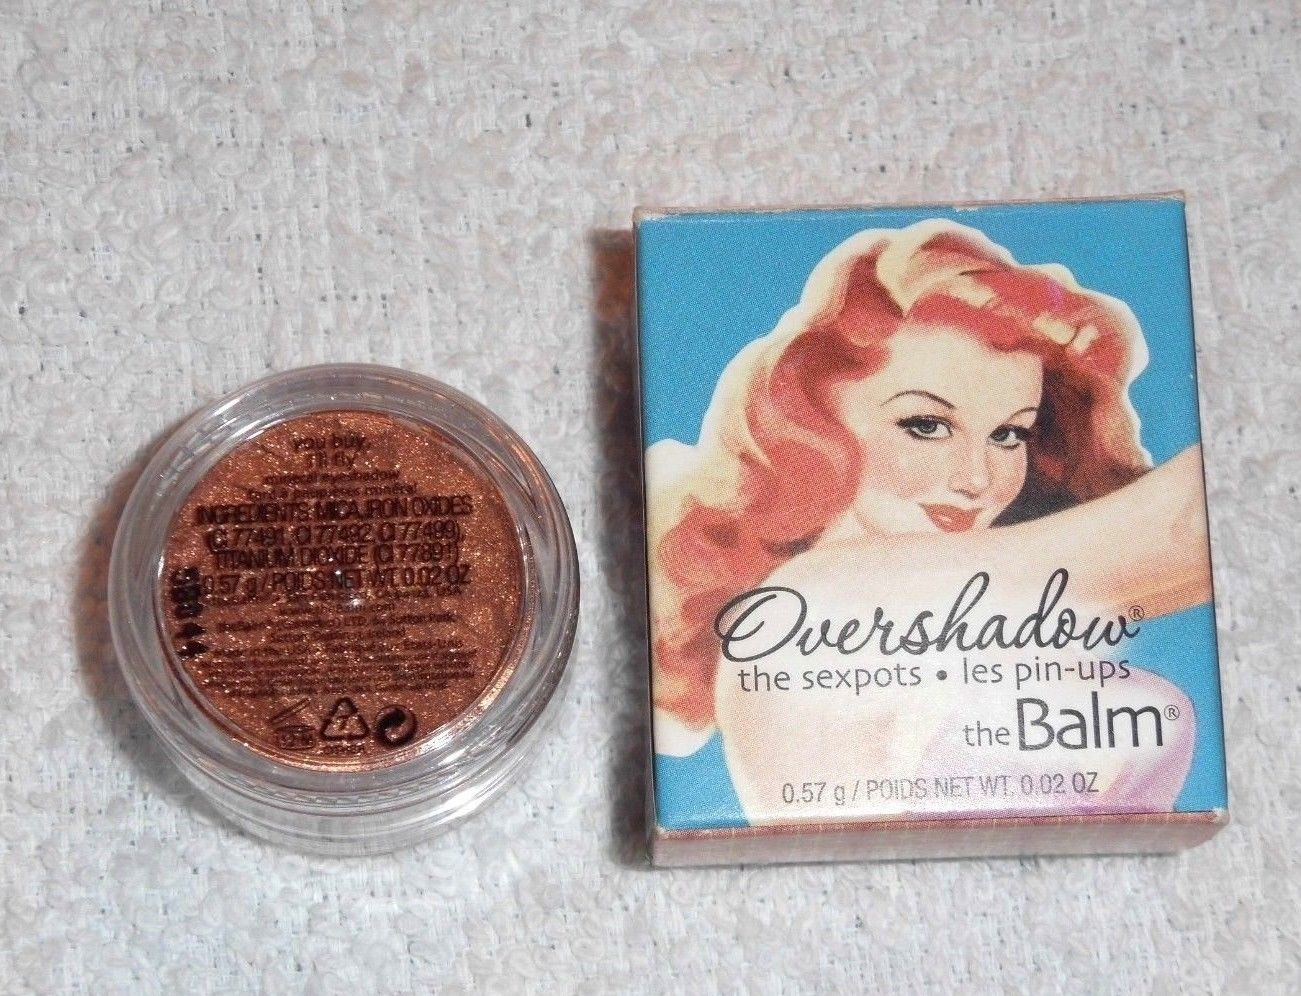 The Balm Overshadow Shimmering All Mineral Eyeshadow (BNIB